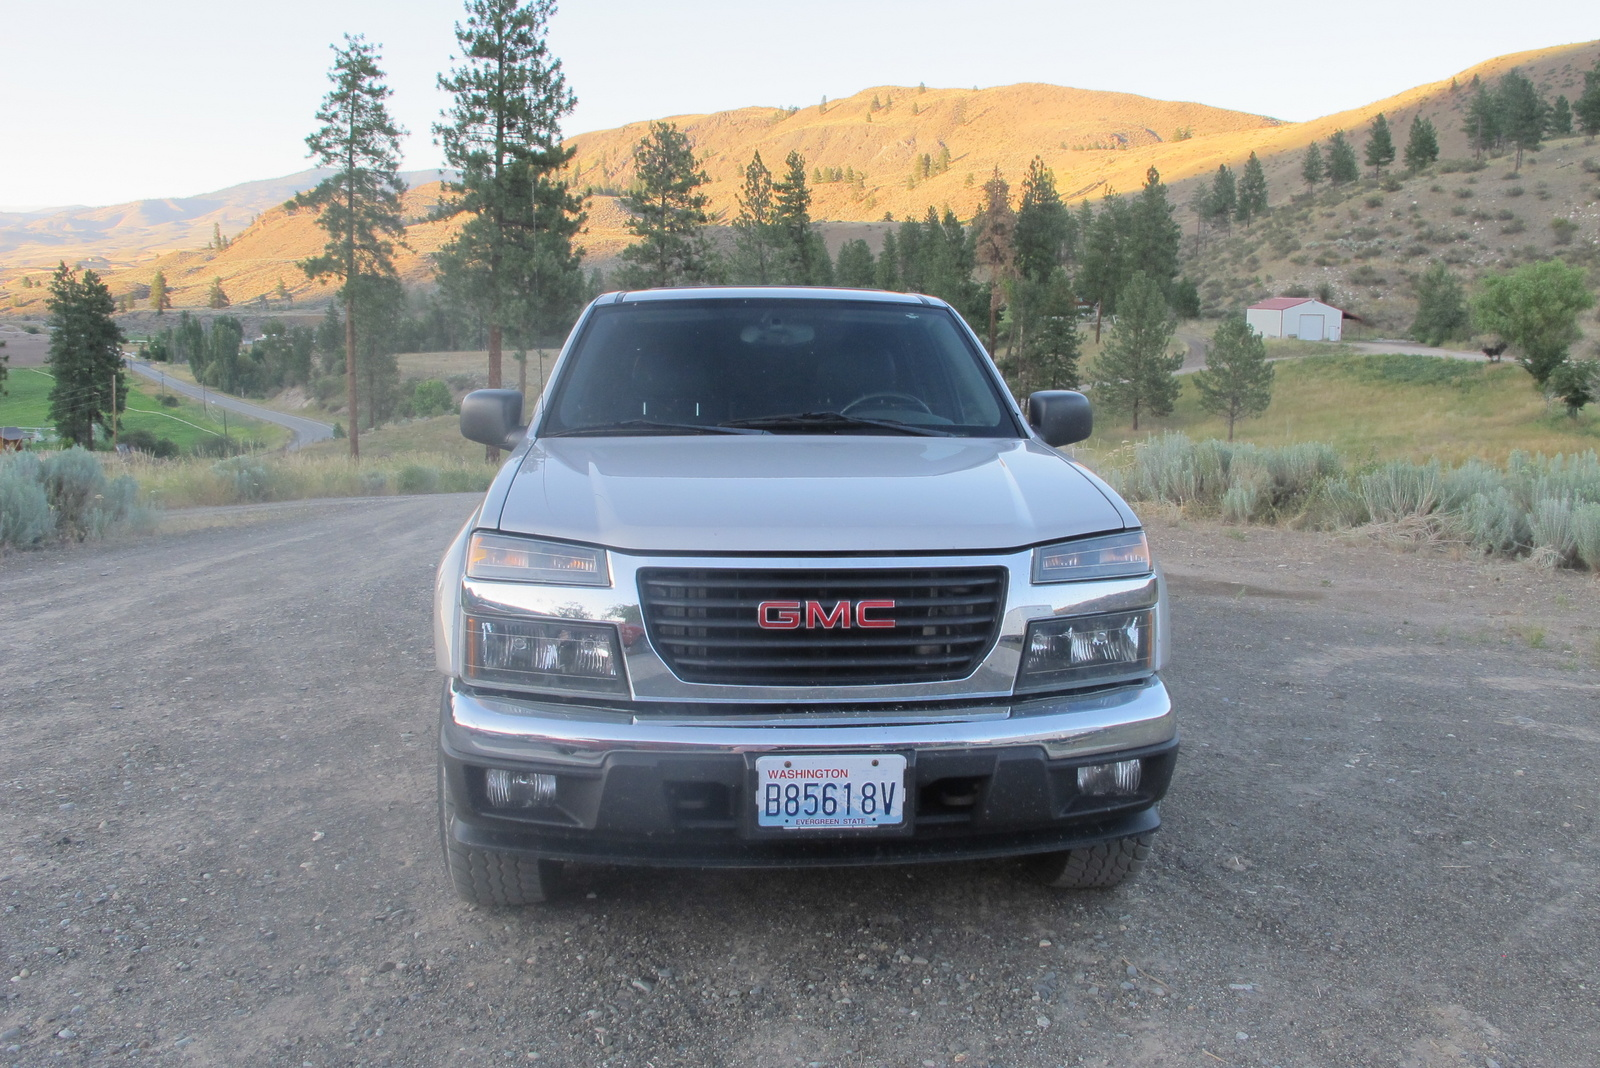 2005 GMC Canyon - Pictures - CarGurus